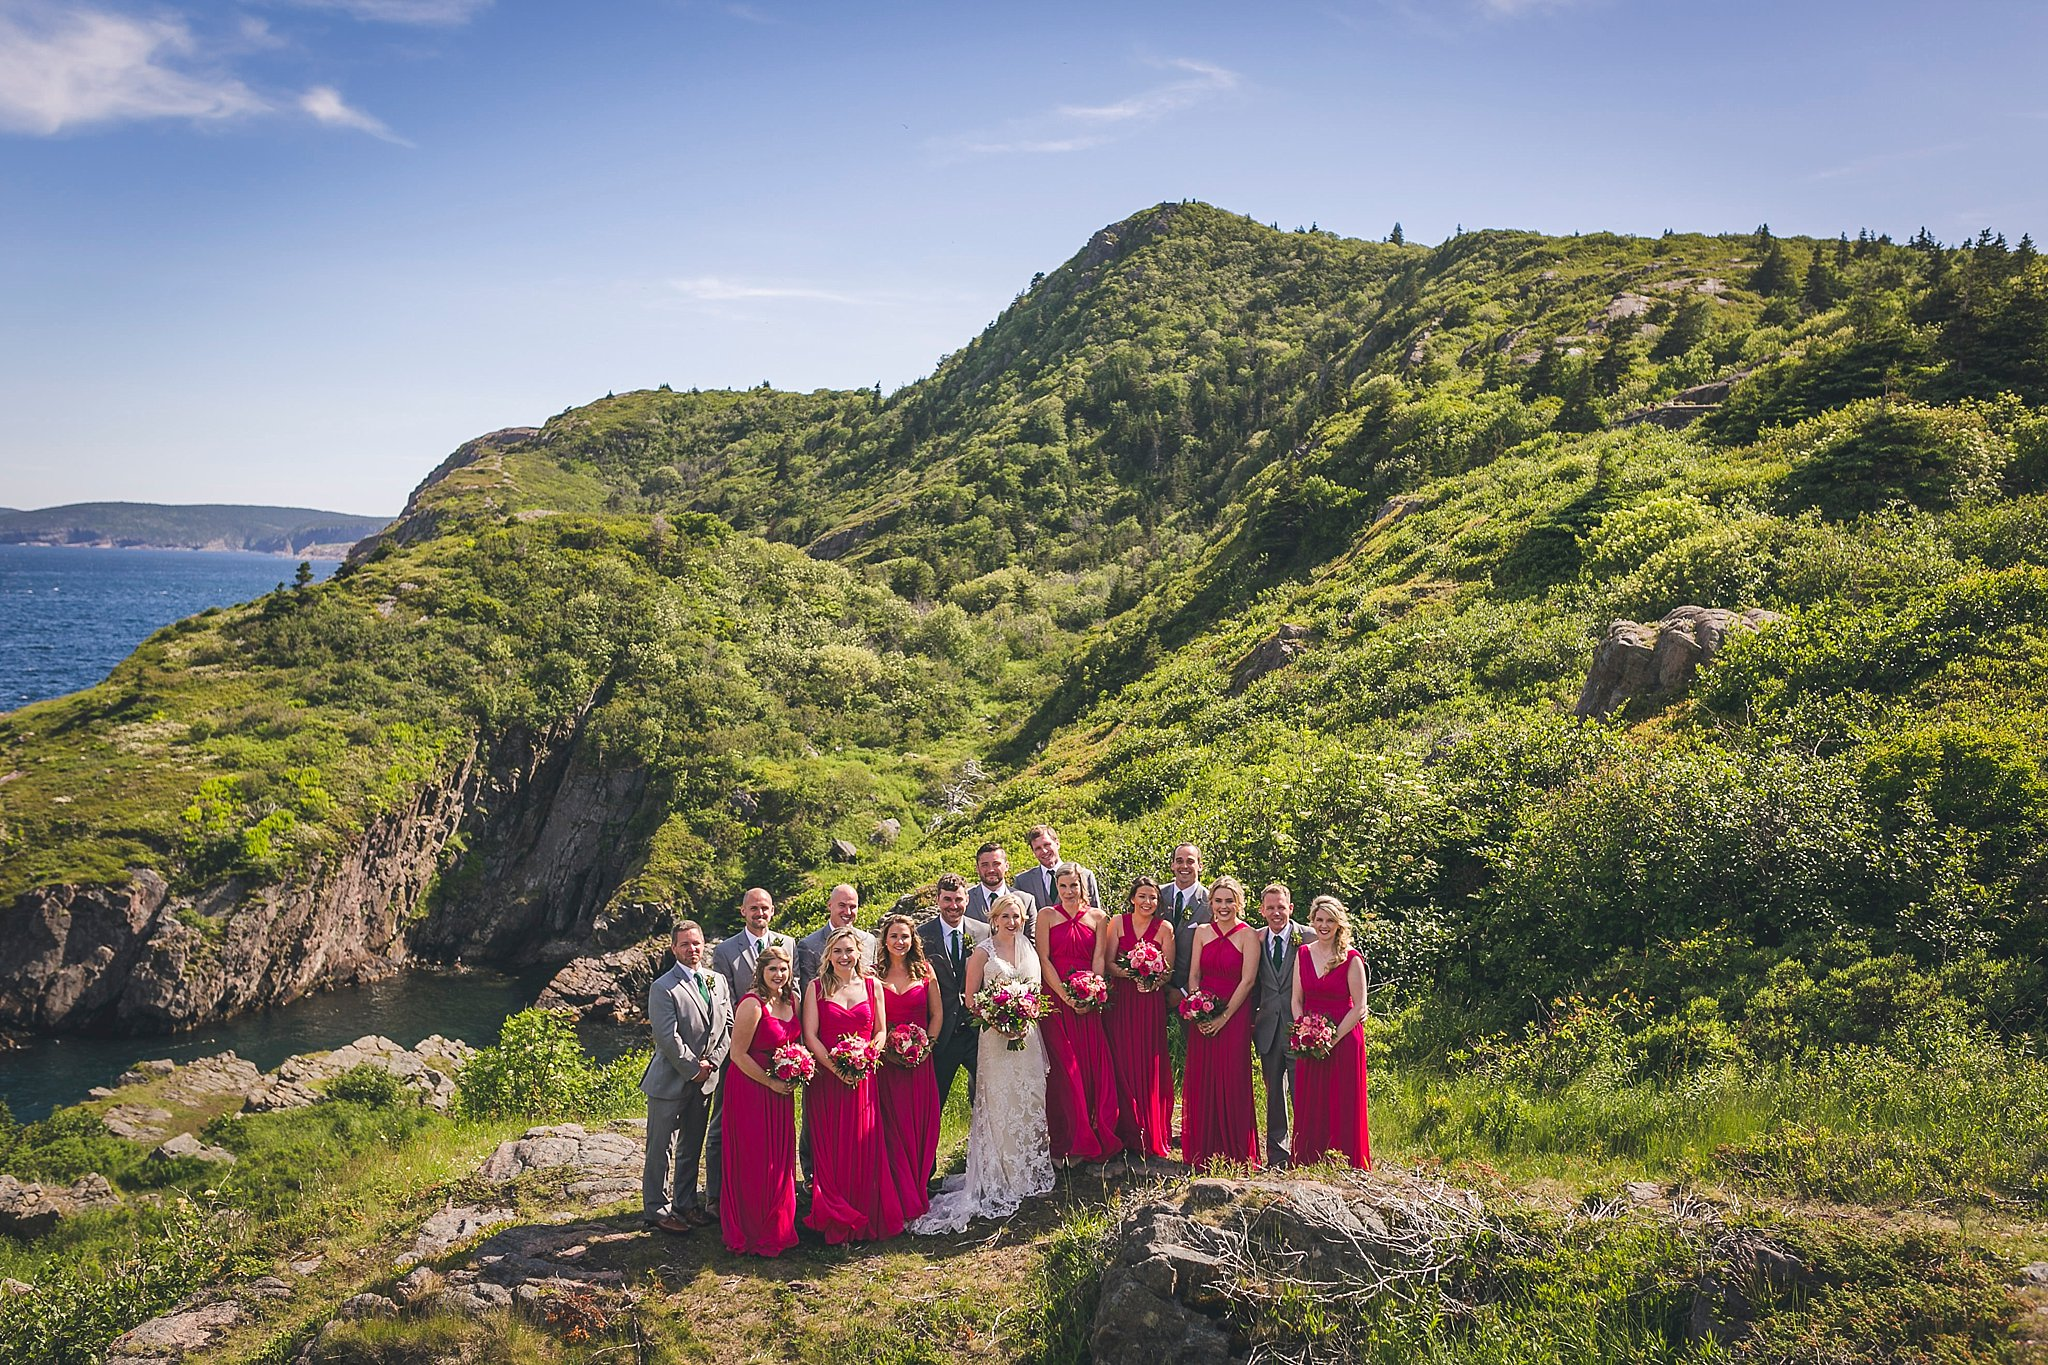 Wedding party at Cuckhold's Cove in Quidi Vidi in St. John's, Newfoundland